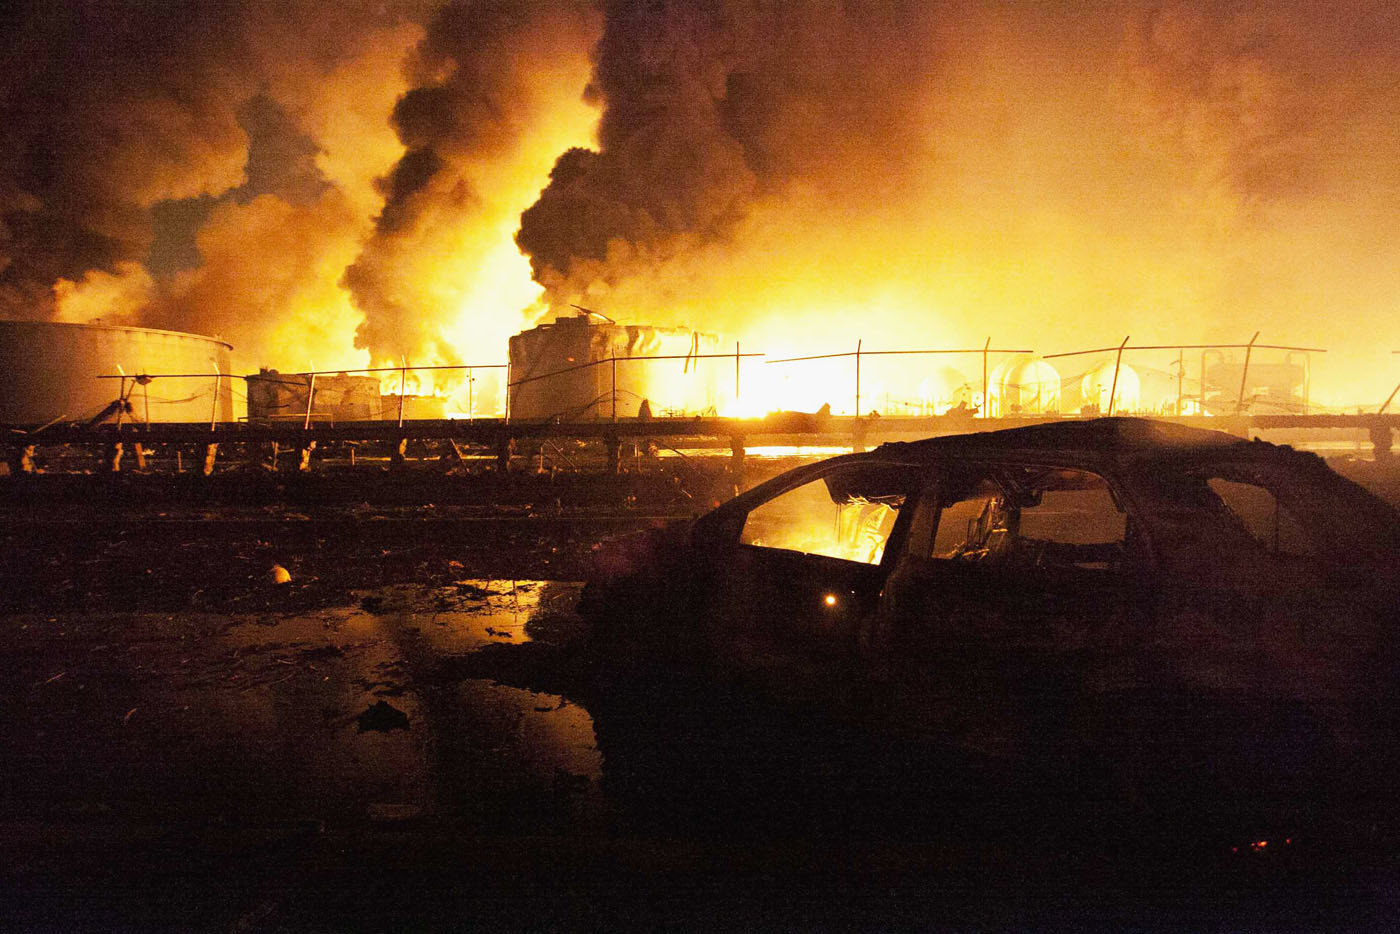 A burnt car is see in the affected area after an explosion at Amuay oil refinery in Punto Fijo